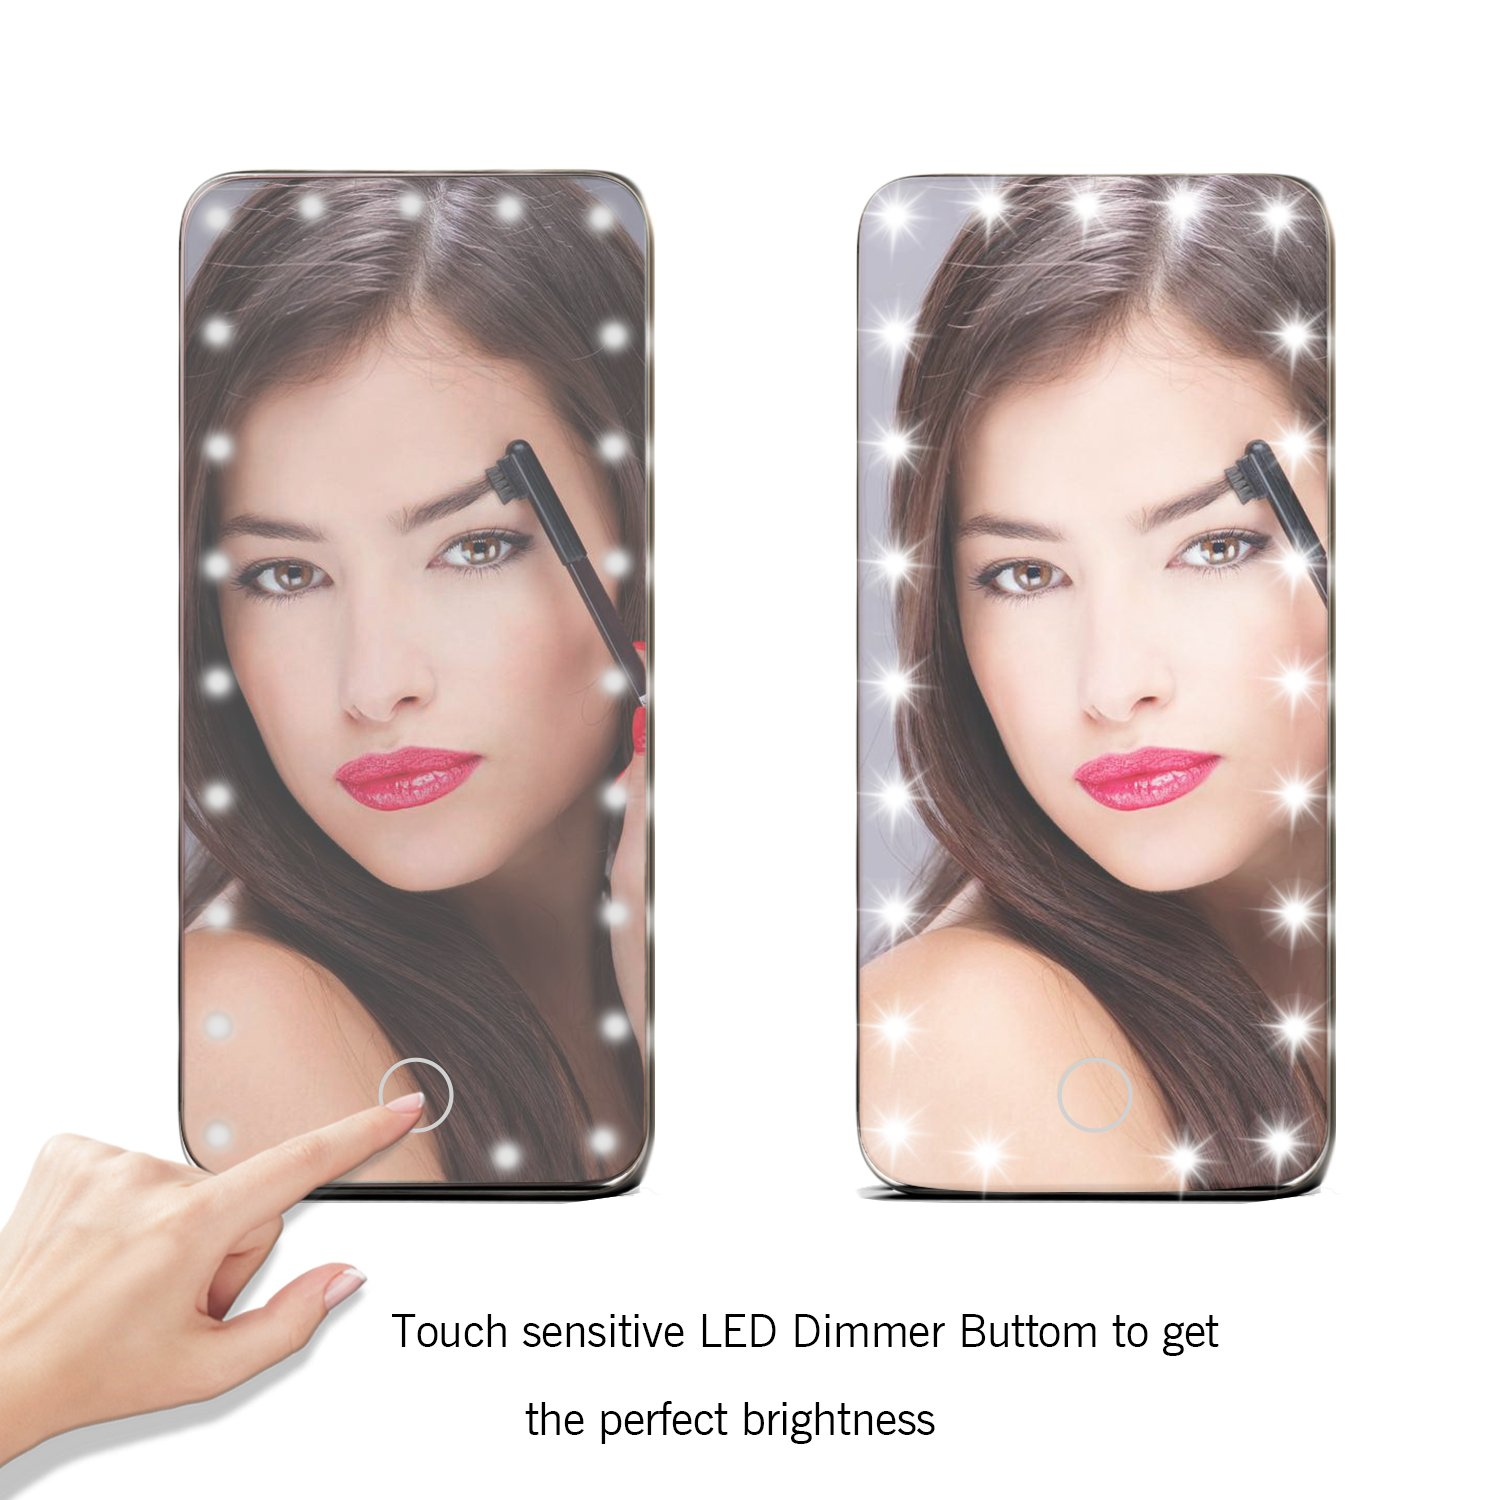 Lighted Makeup Mirror, LoiZau 23 LEDs 5.5 Inch Portable Vanity Makeup Mirror with Lights for Travel USB Charging(Rose Gold)